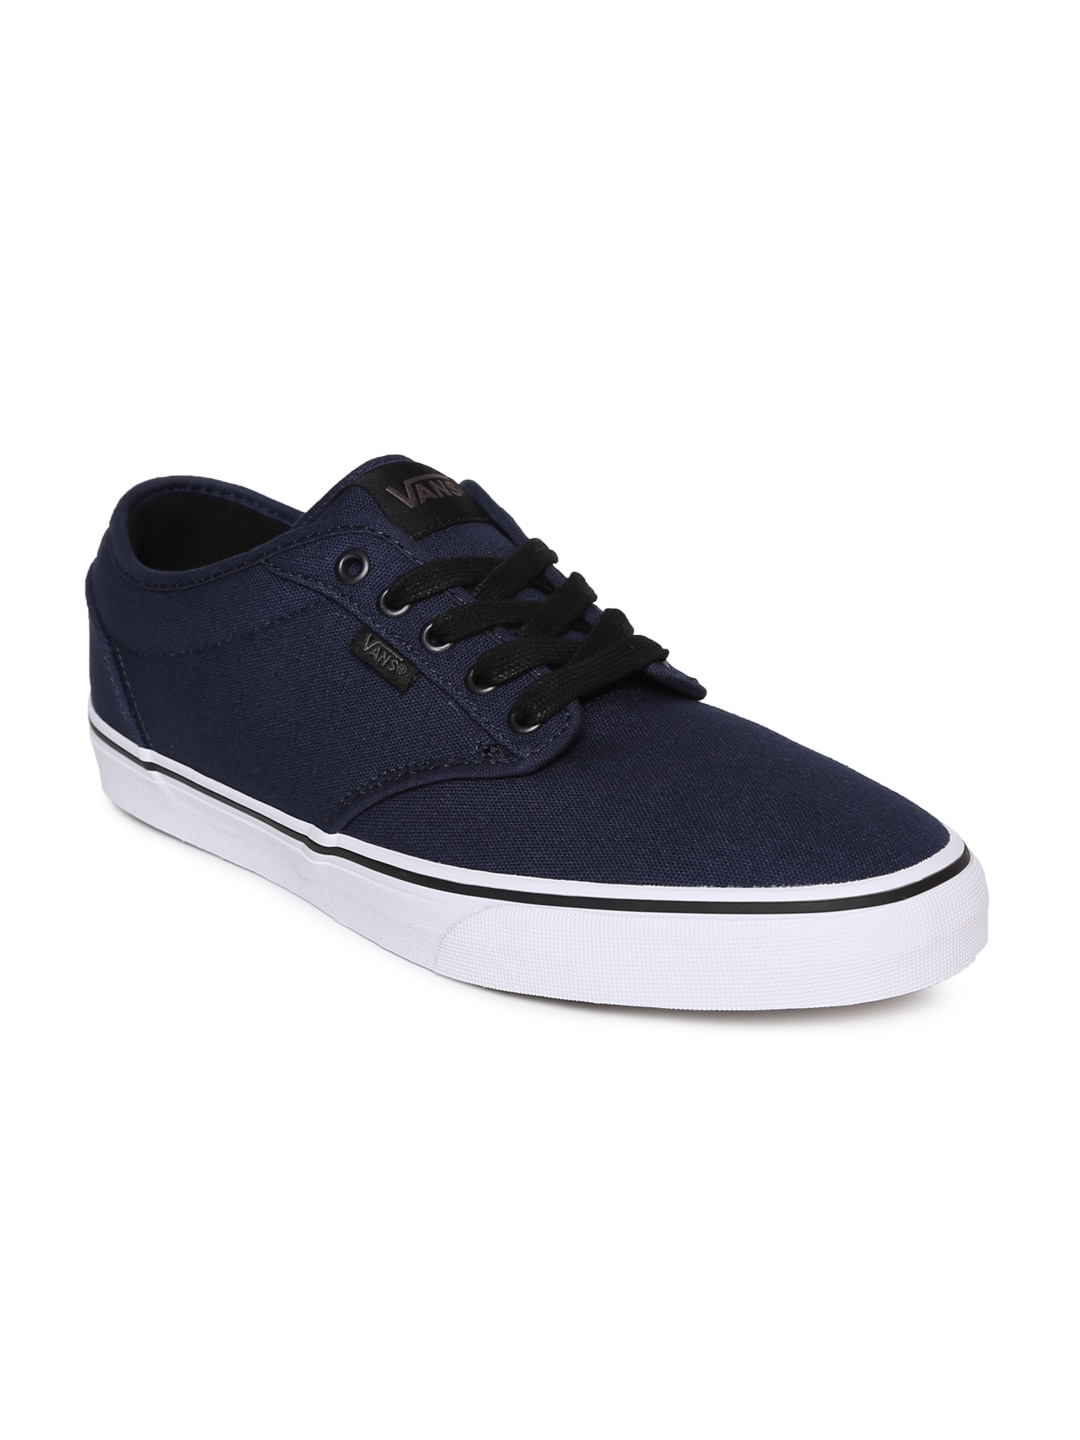 6a4b6a3af8 Casual Shoes For Men - Buy Casual   Flat Shoes For Men